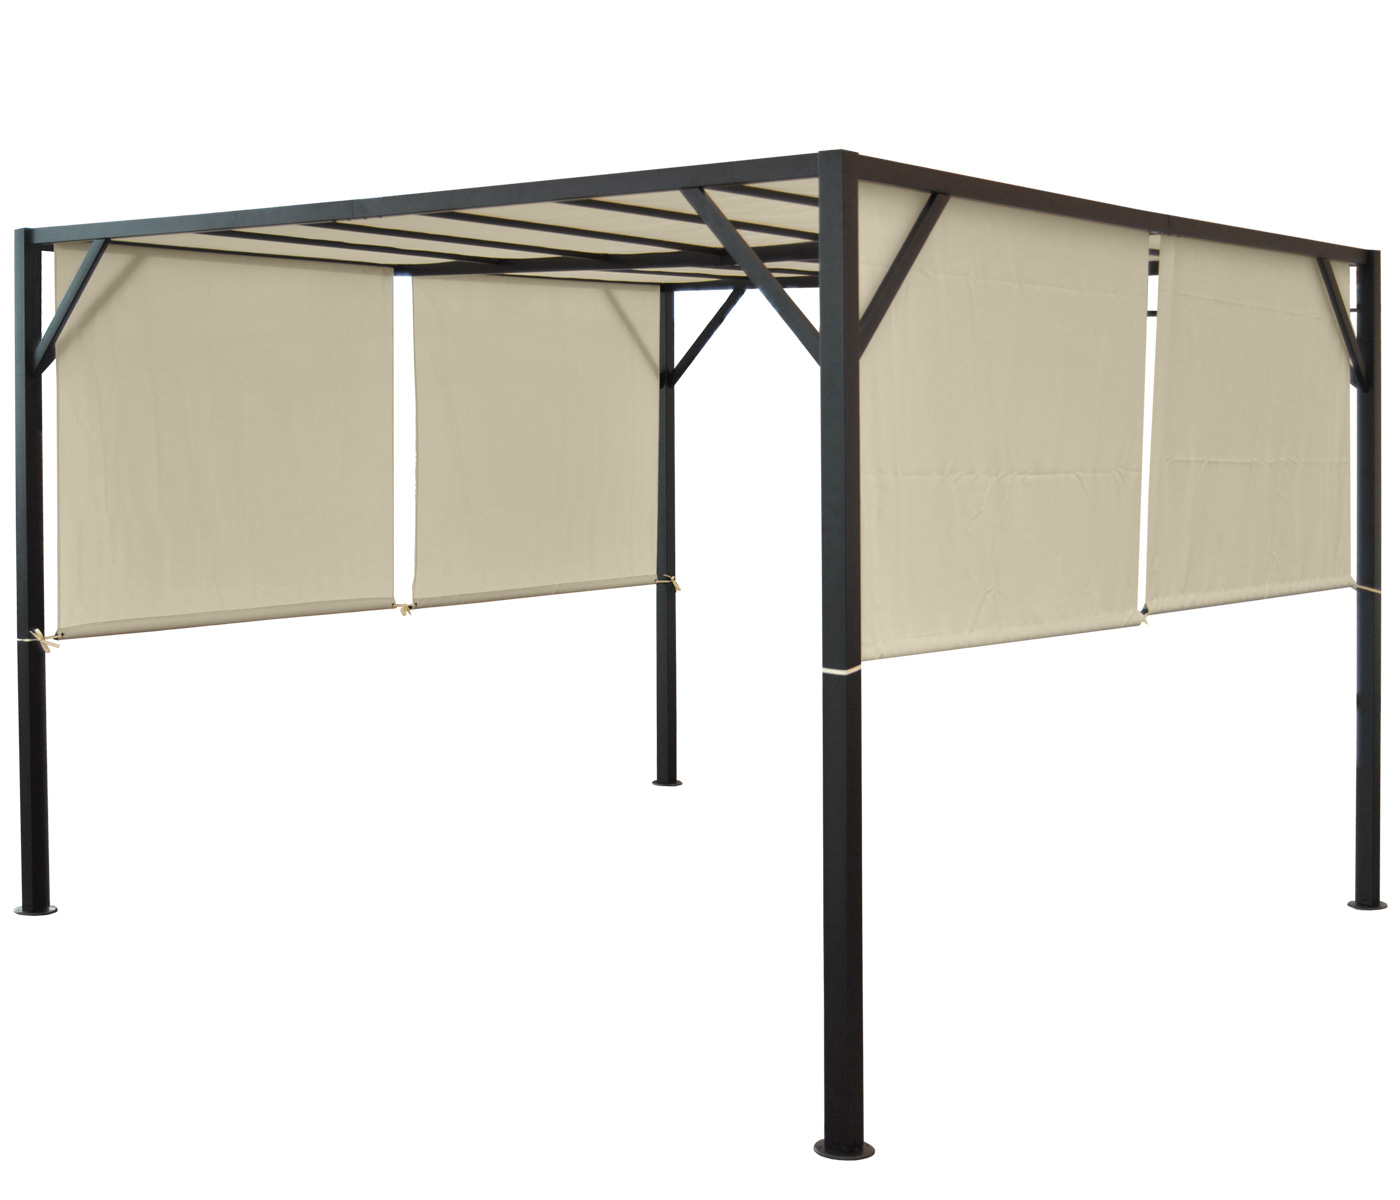 pergola baia garten pavillon 6cm stahl gestell schiebedach 3x3m 4x3m 4x4m ebay. Black Bedroom Furniture Sets. Home Design Ideas